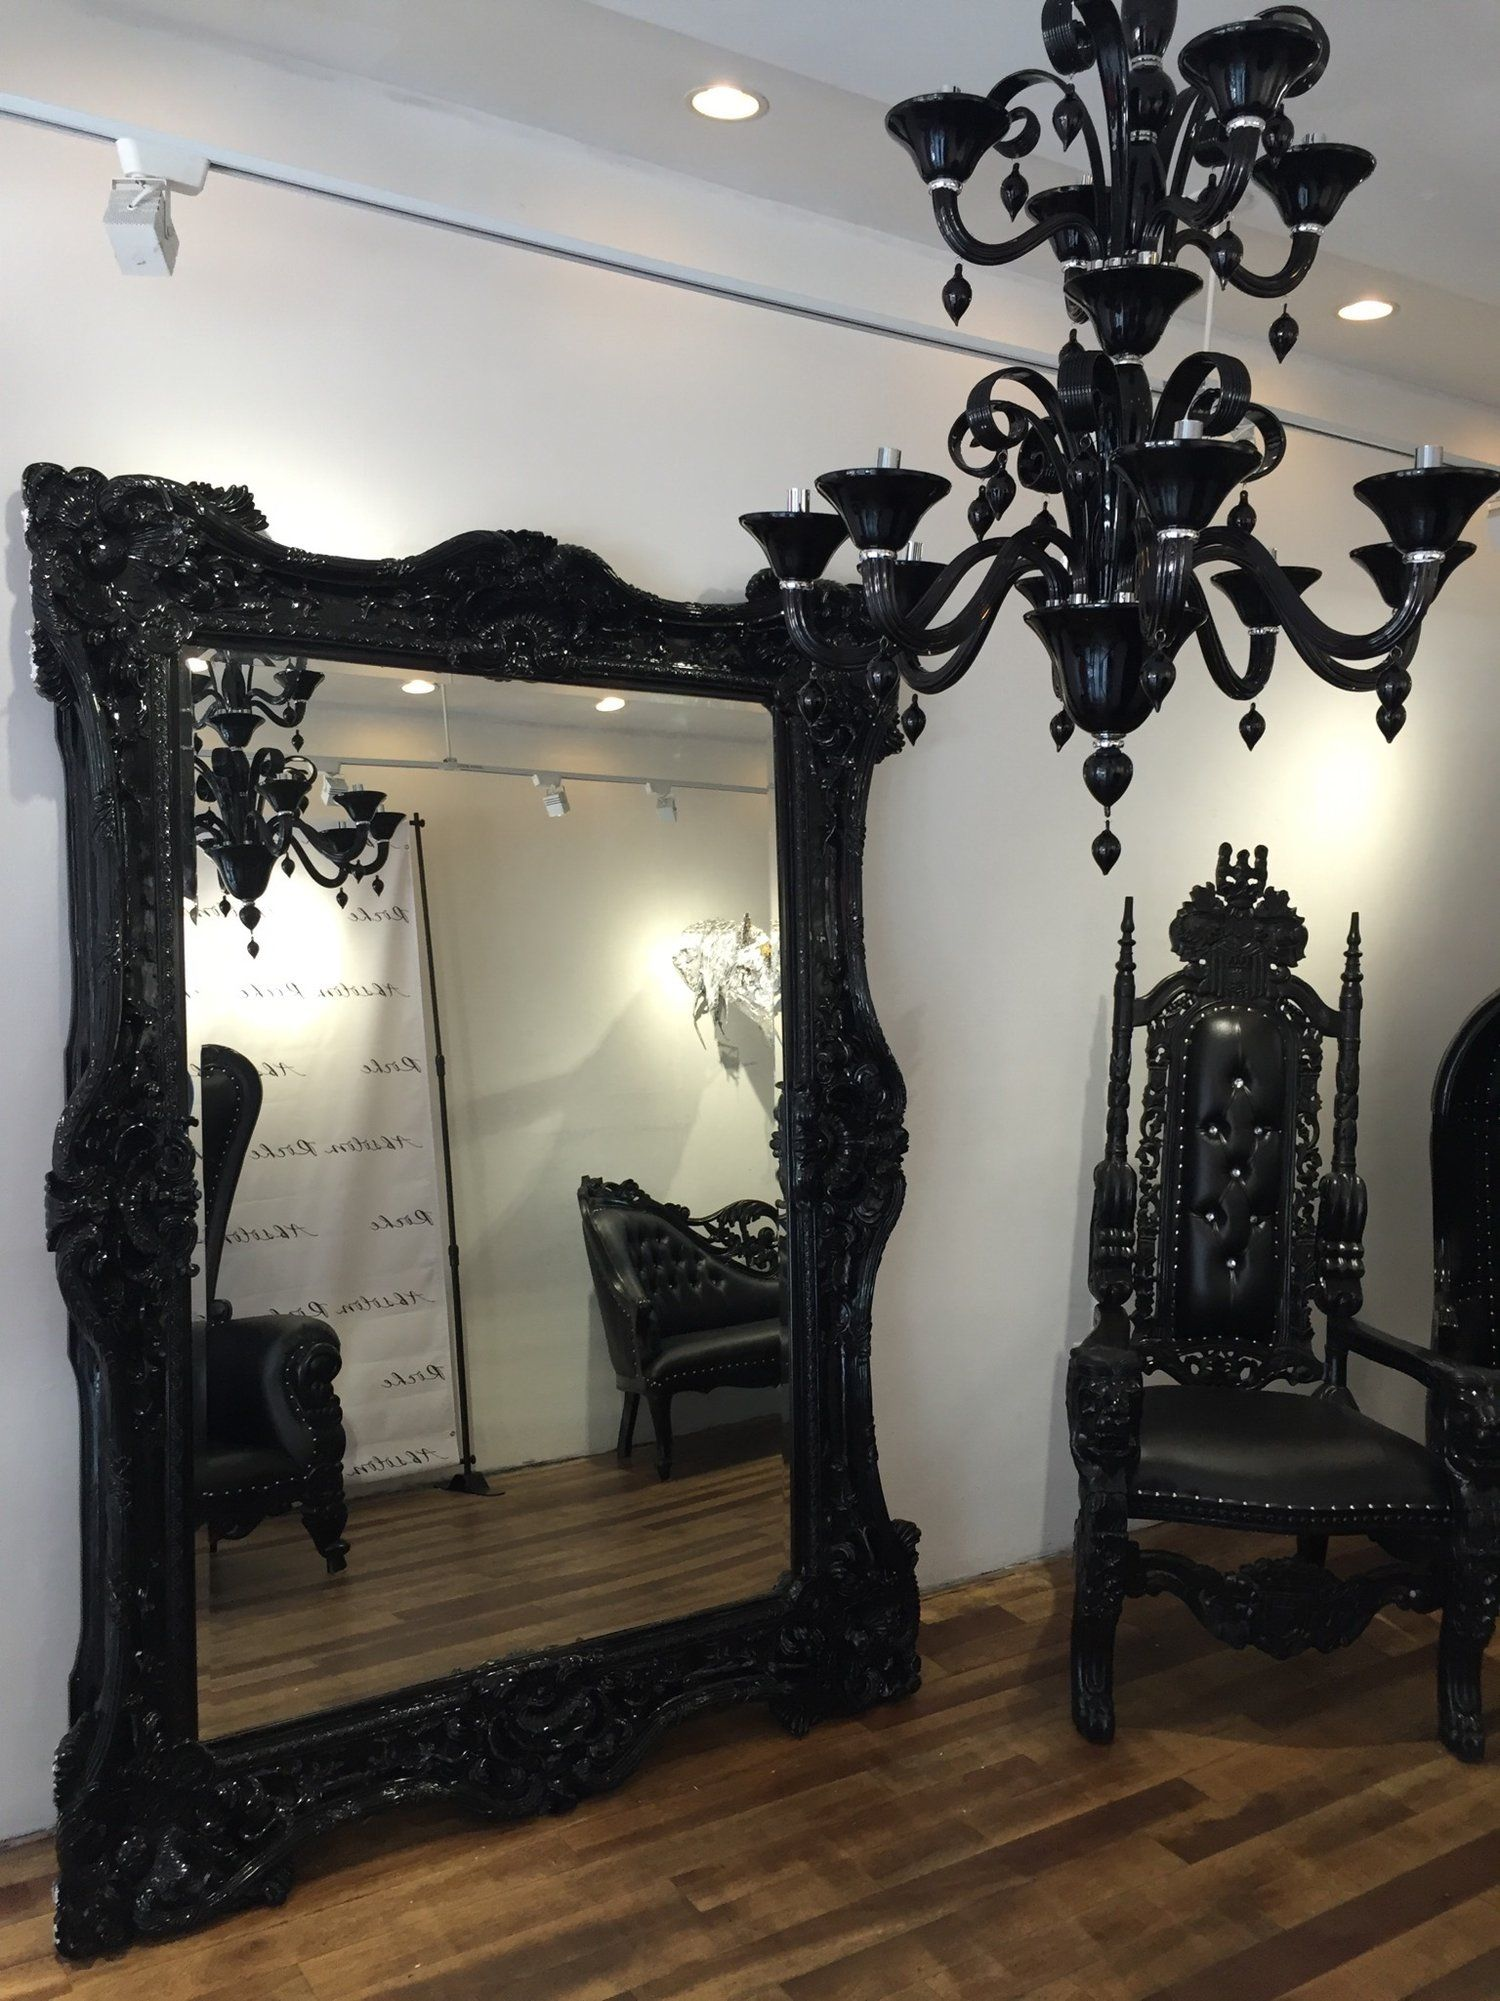 NYC FLOOR MODEL | Baroque Ornate Carved Mirror - Black | Decor ...